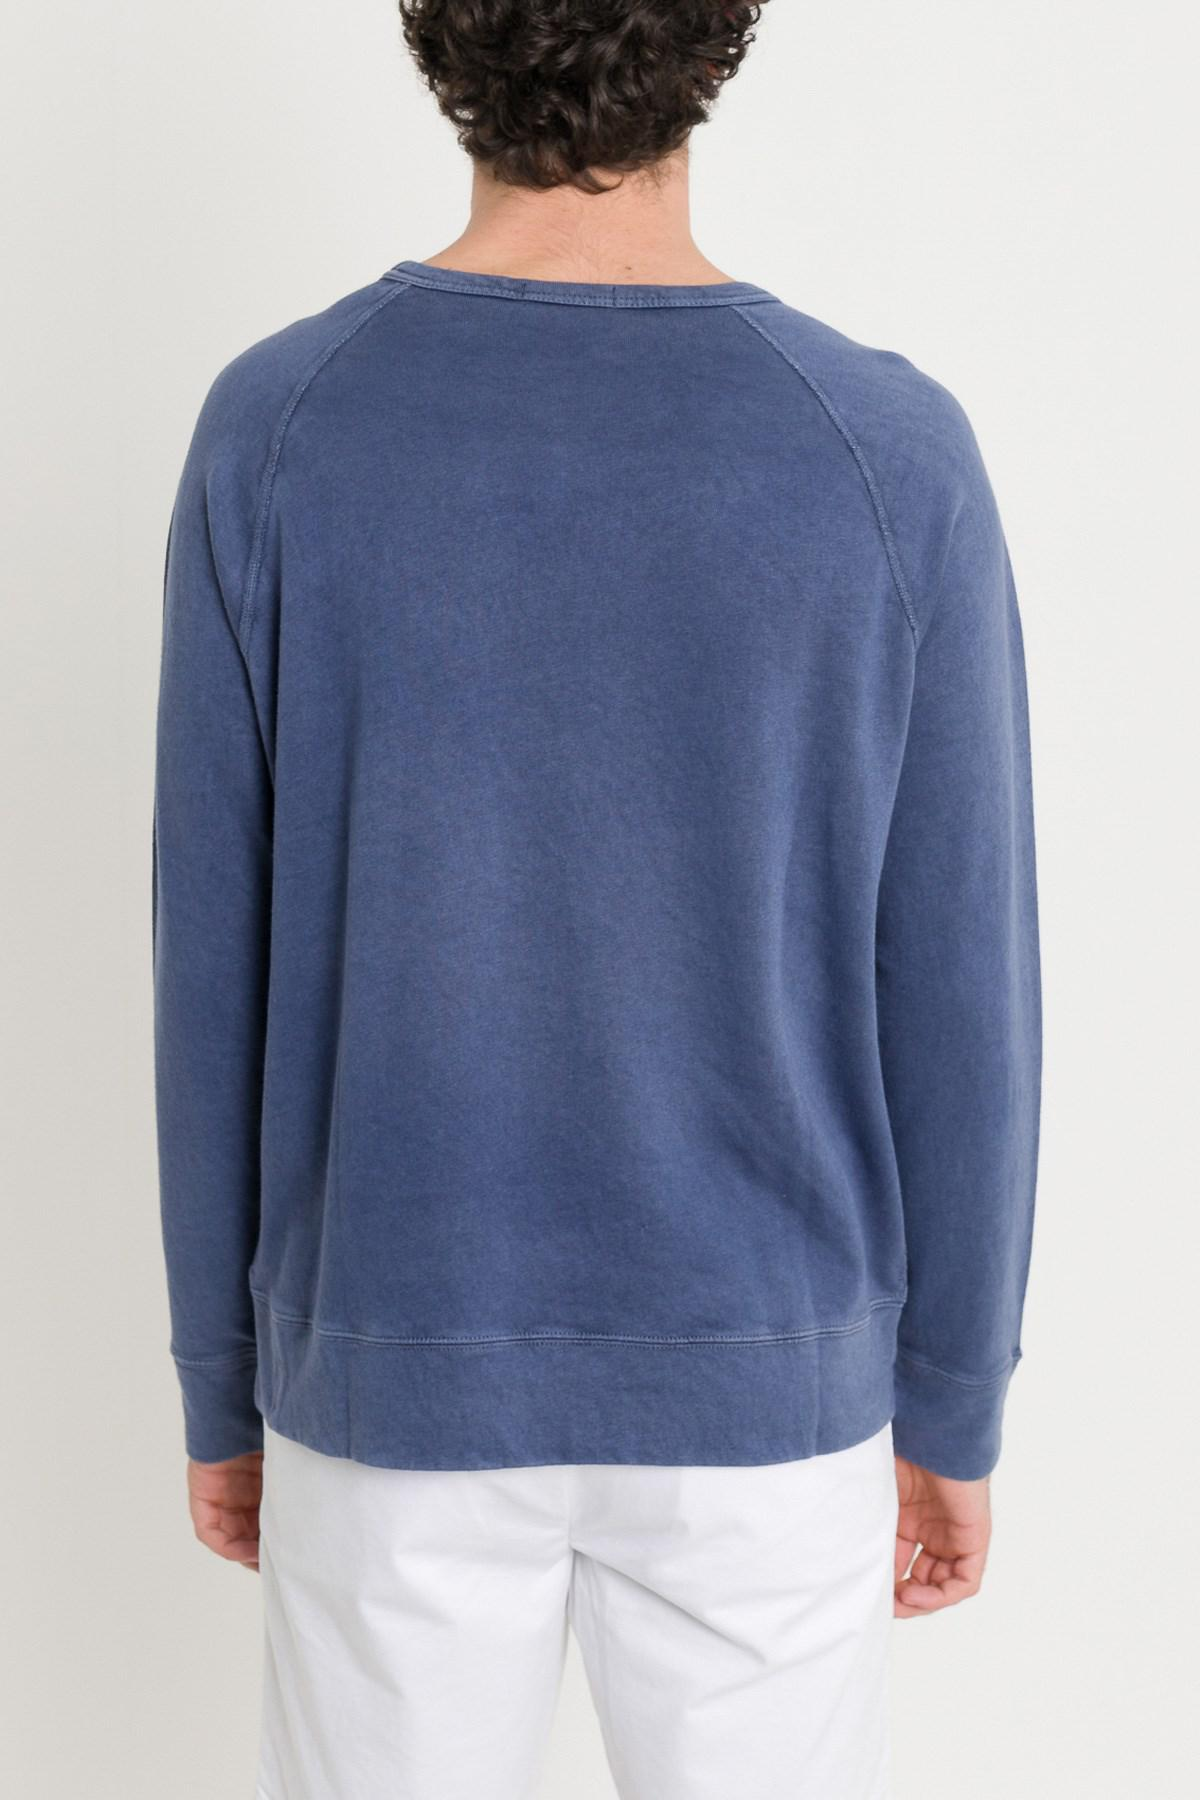 67b4bf8d164b Polo Ralph Lauren - Blue Logo Sweatshirt for Men - Lyst. View fullscreen